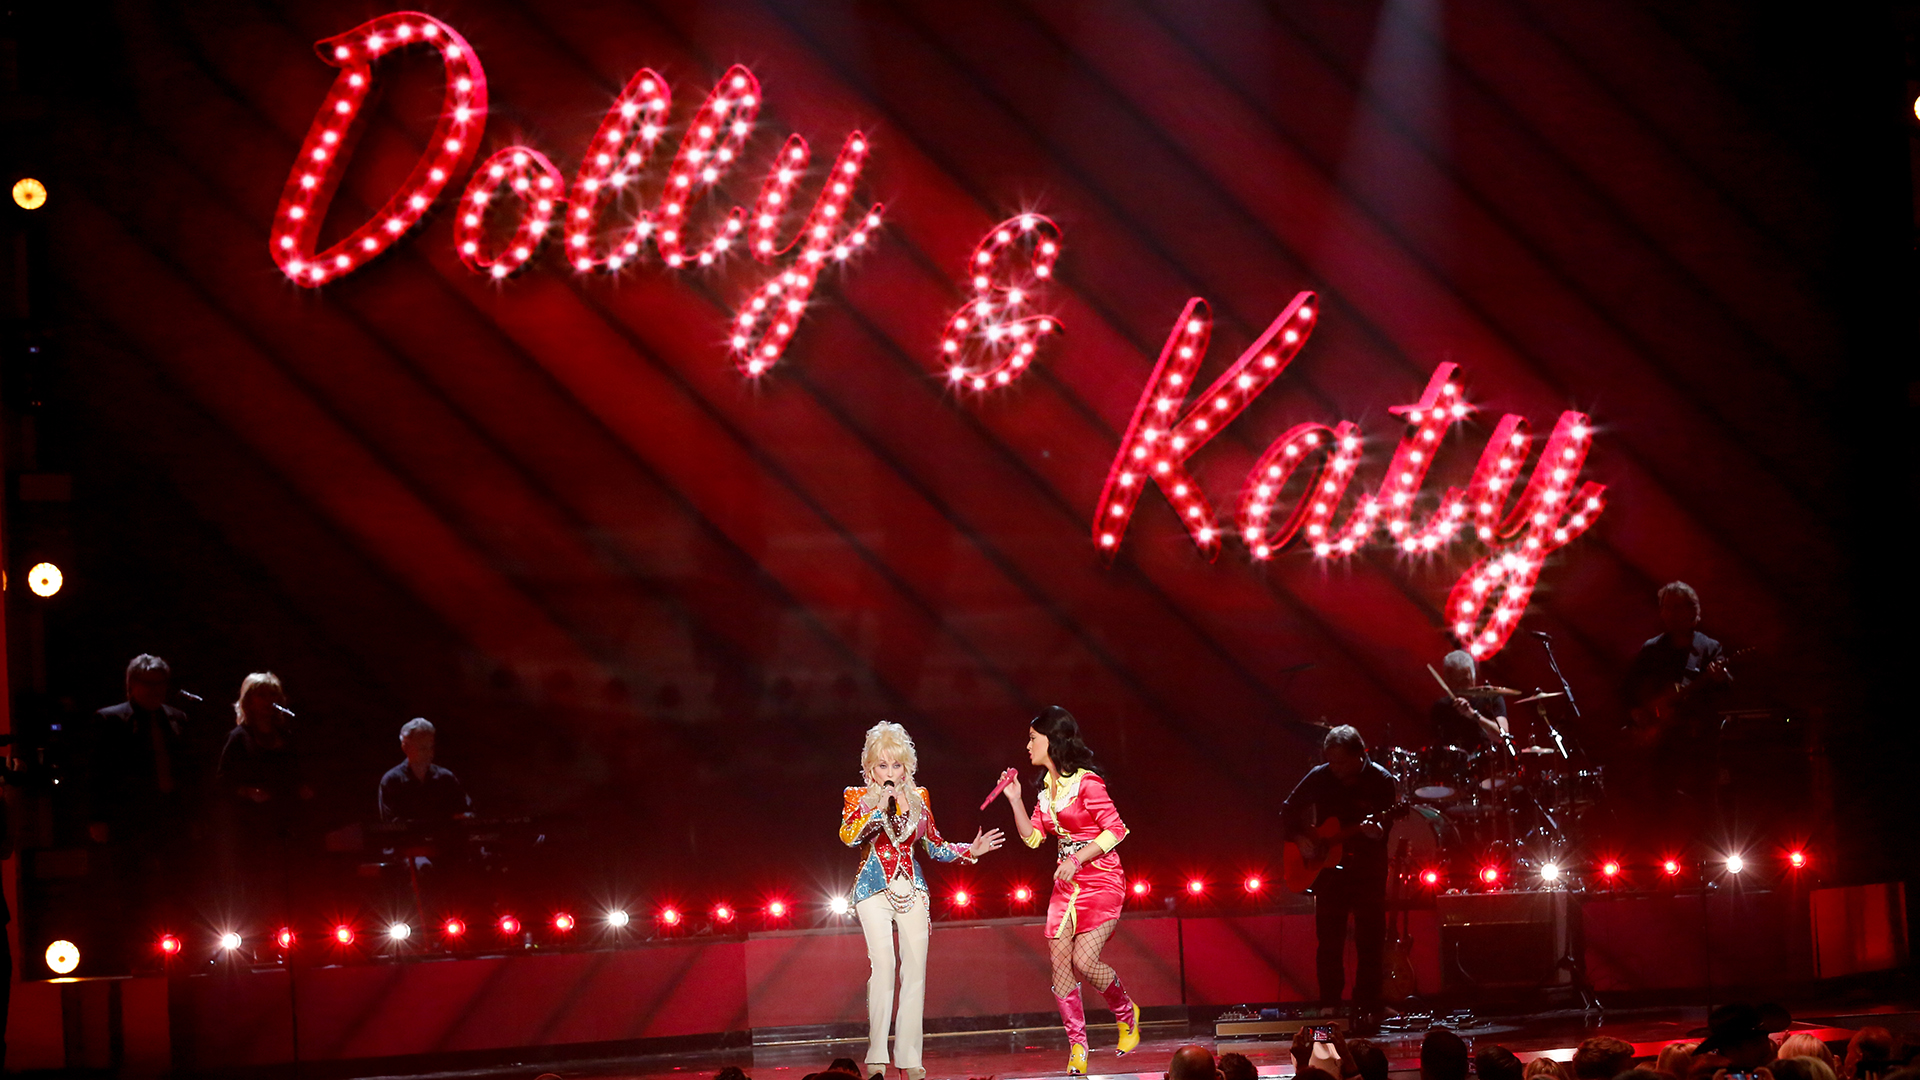 Performances like these are what make the ACM Awards the year's must-see country music event.